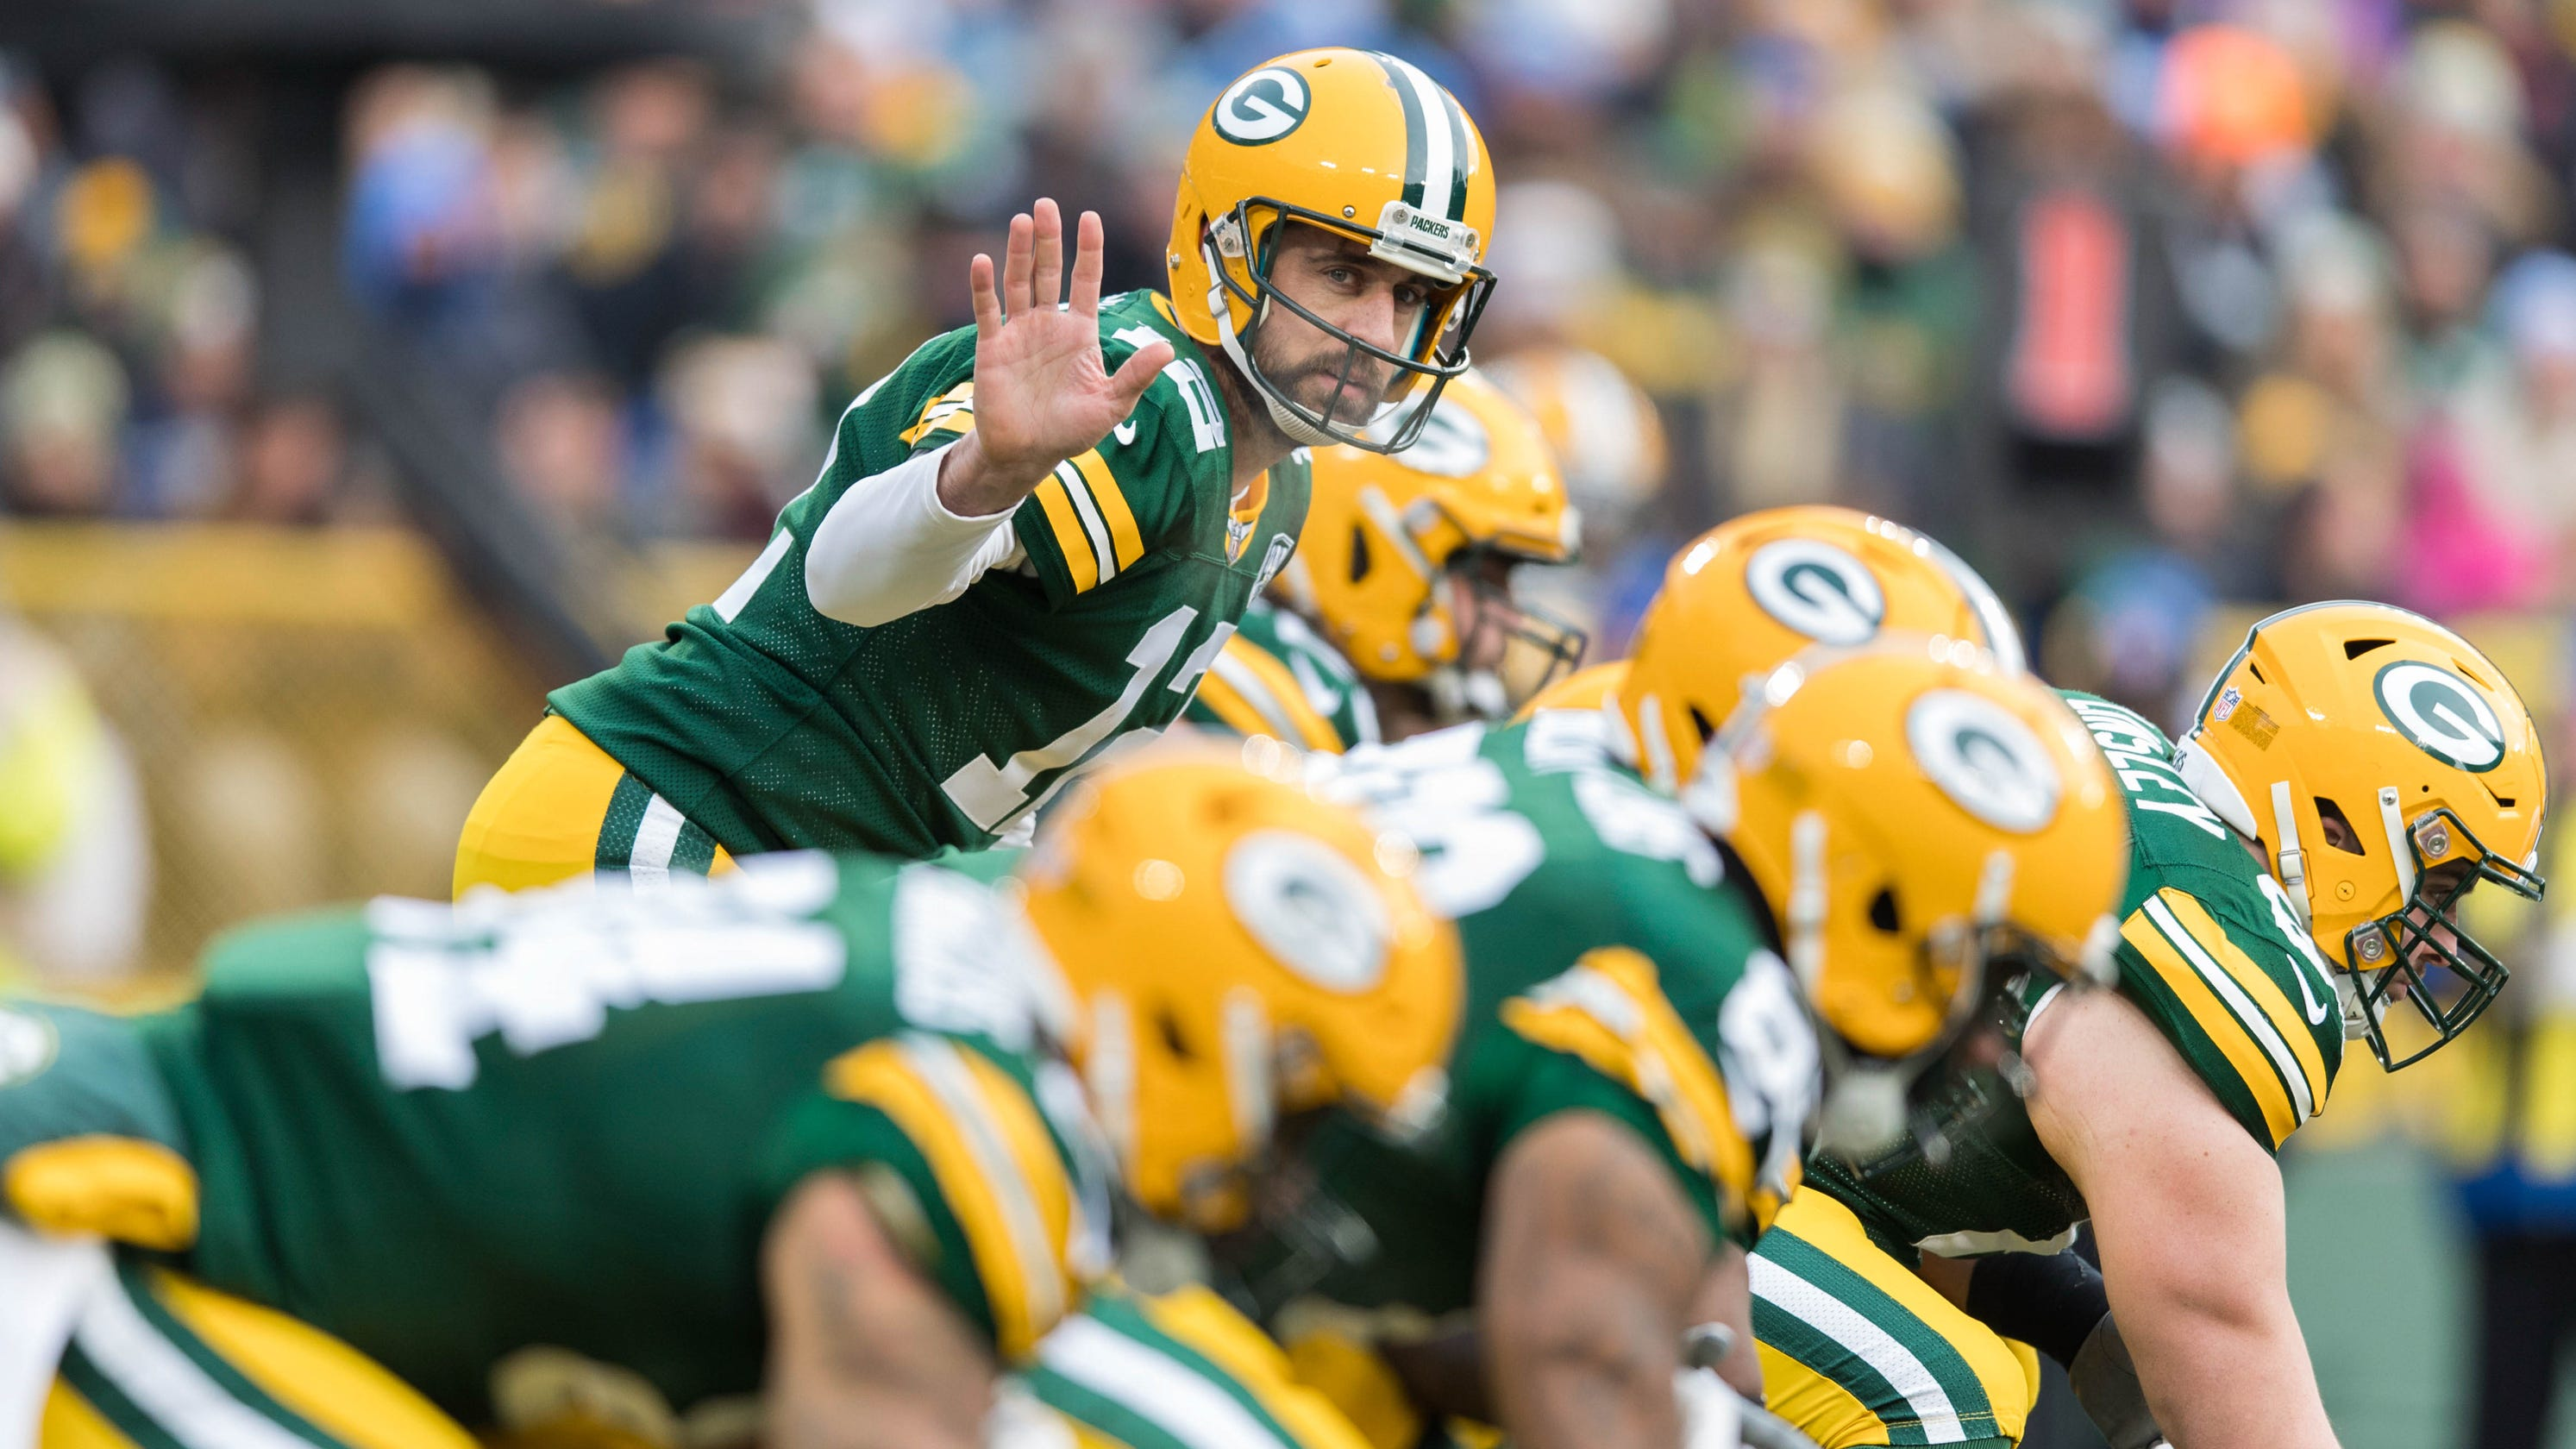 Green Bay Packers' Aaron Rodgers makes 'Game of Thrones' series finale predictions